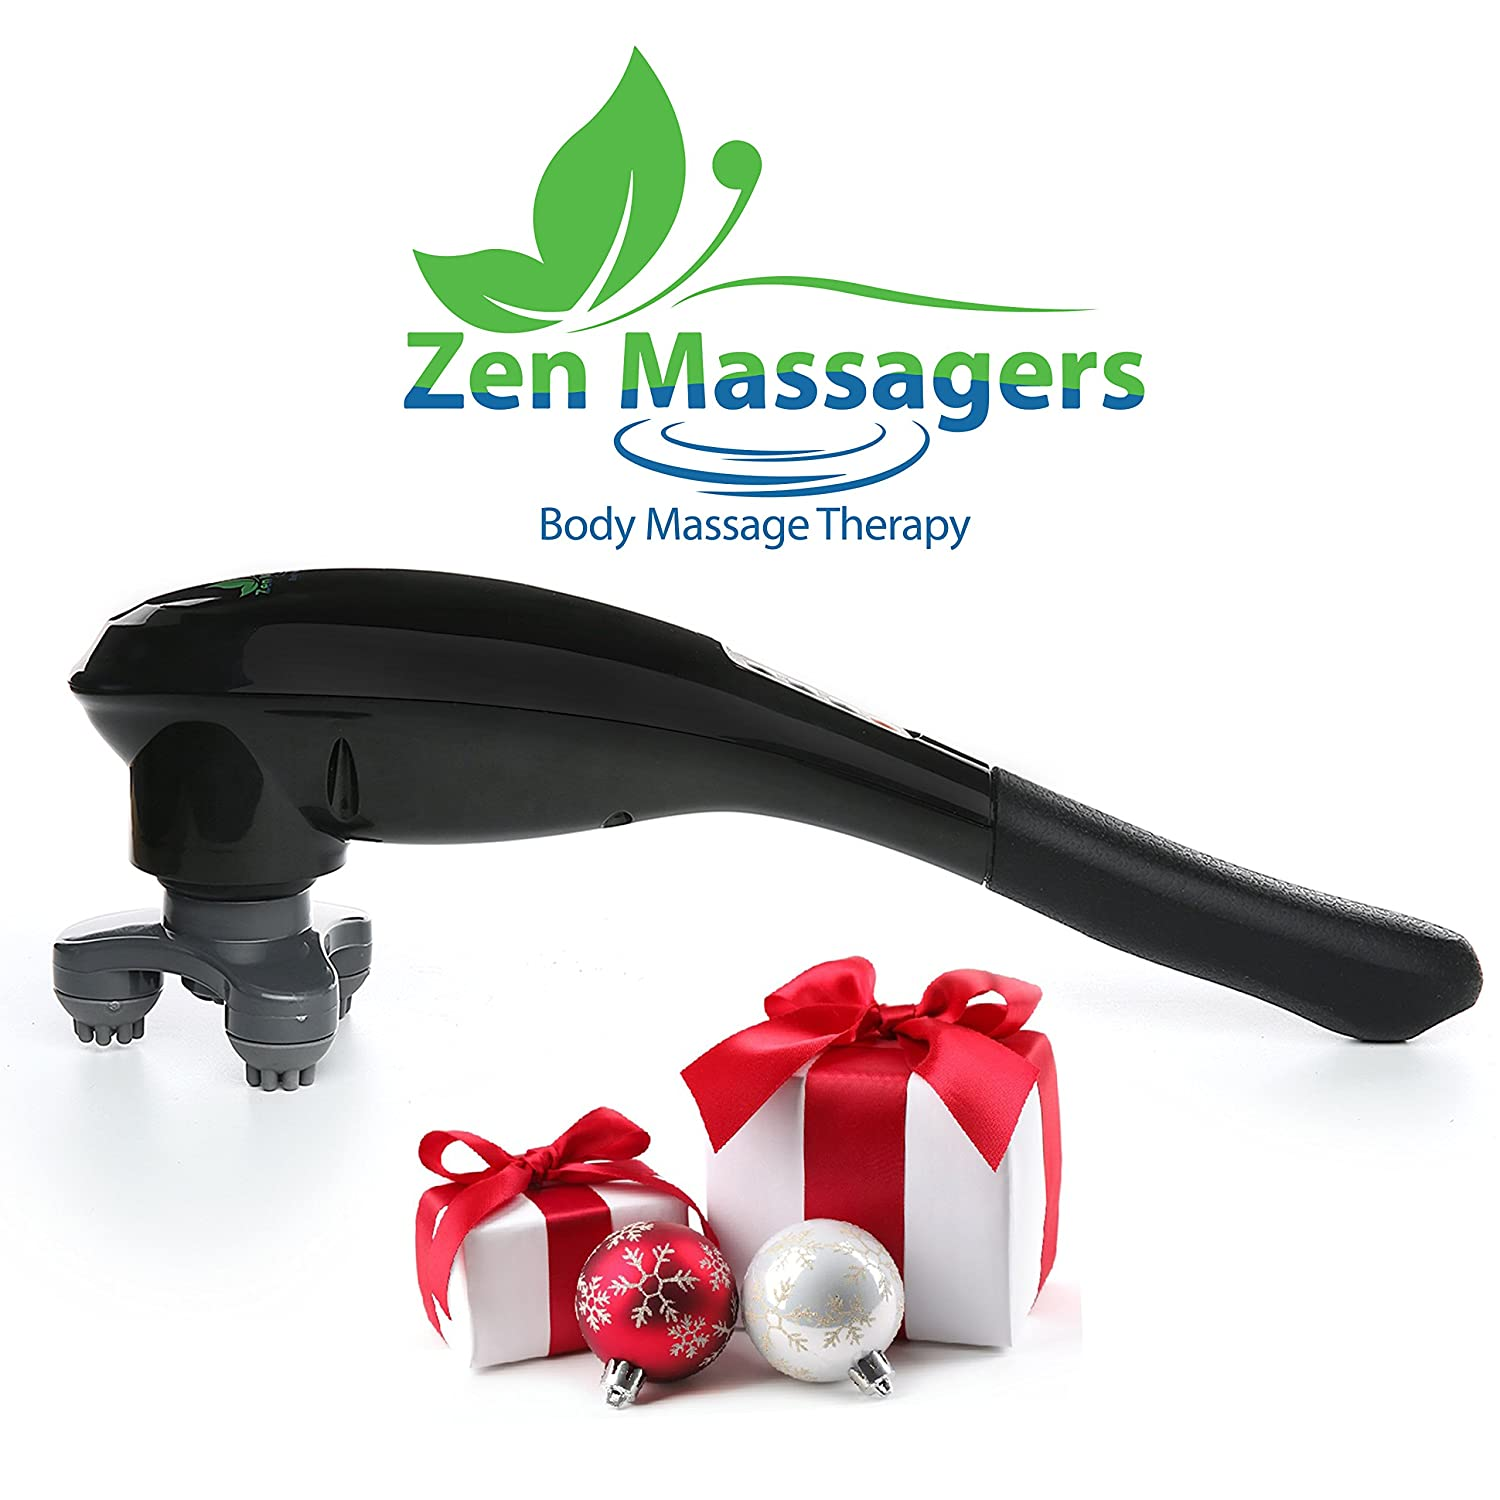 Zenmassager Z10 1 Handheld Percussion Massager Best Back Pain Imo Fortune Reliever Neck Shoulder Relief For Sore Muscles Powerful Electric Cordless